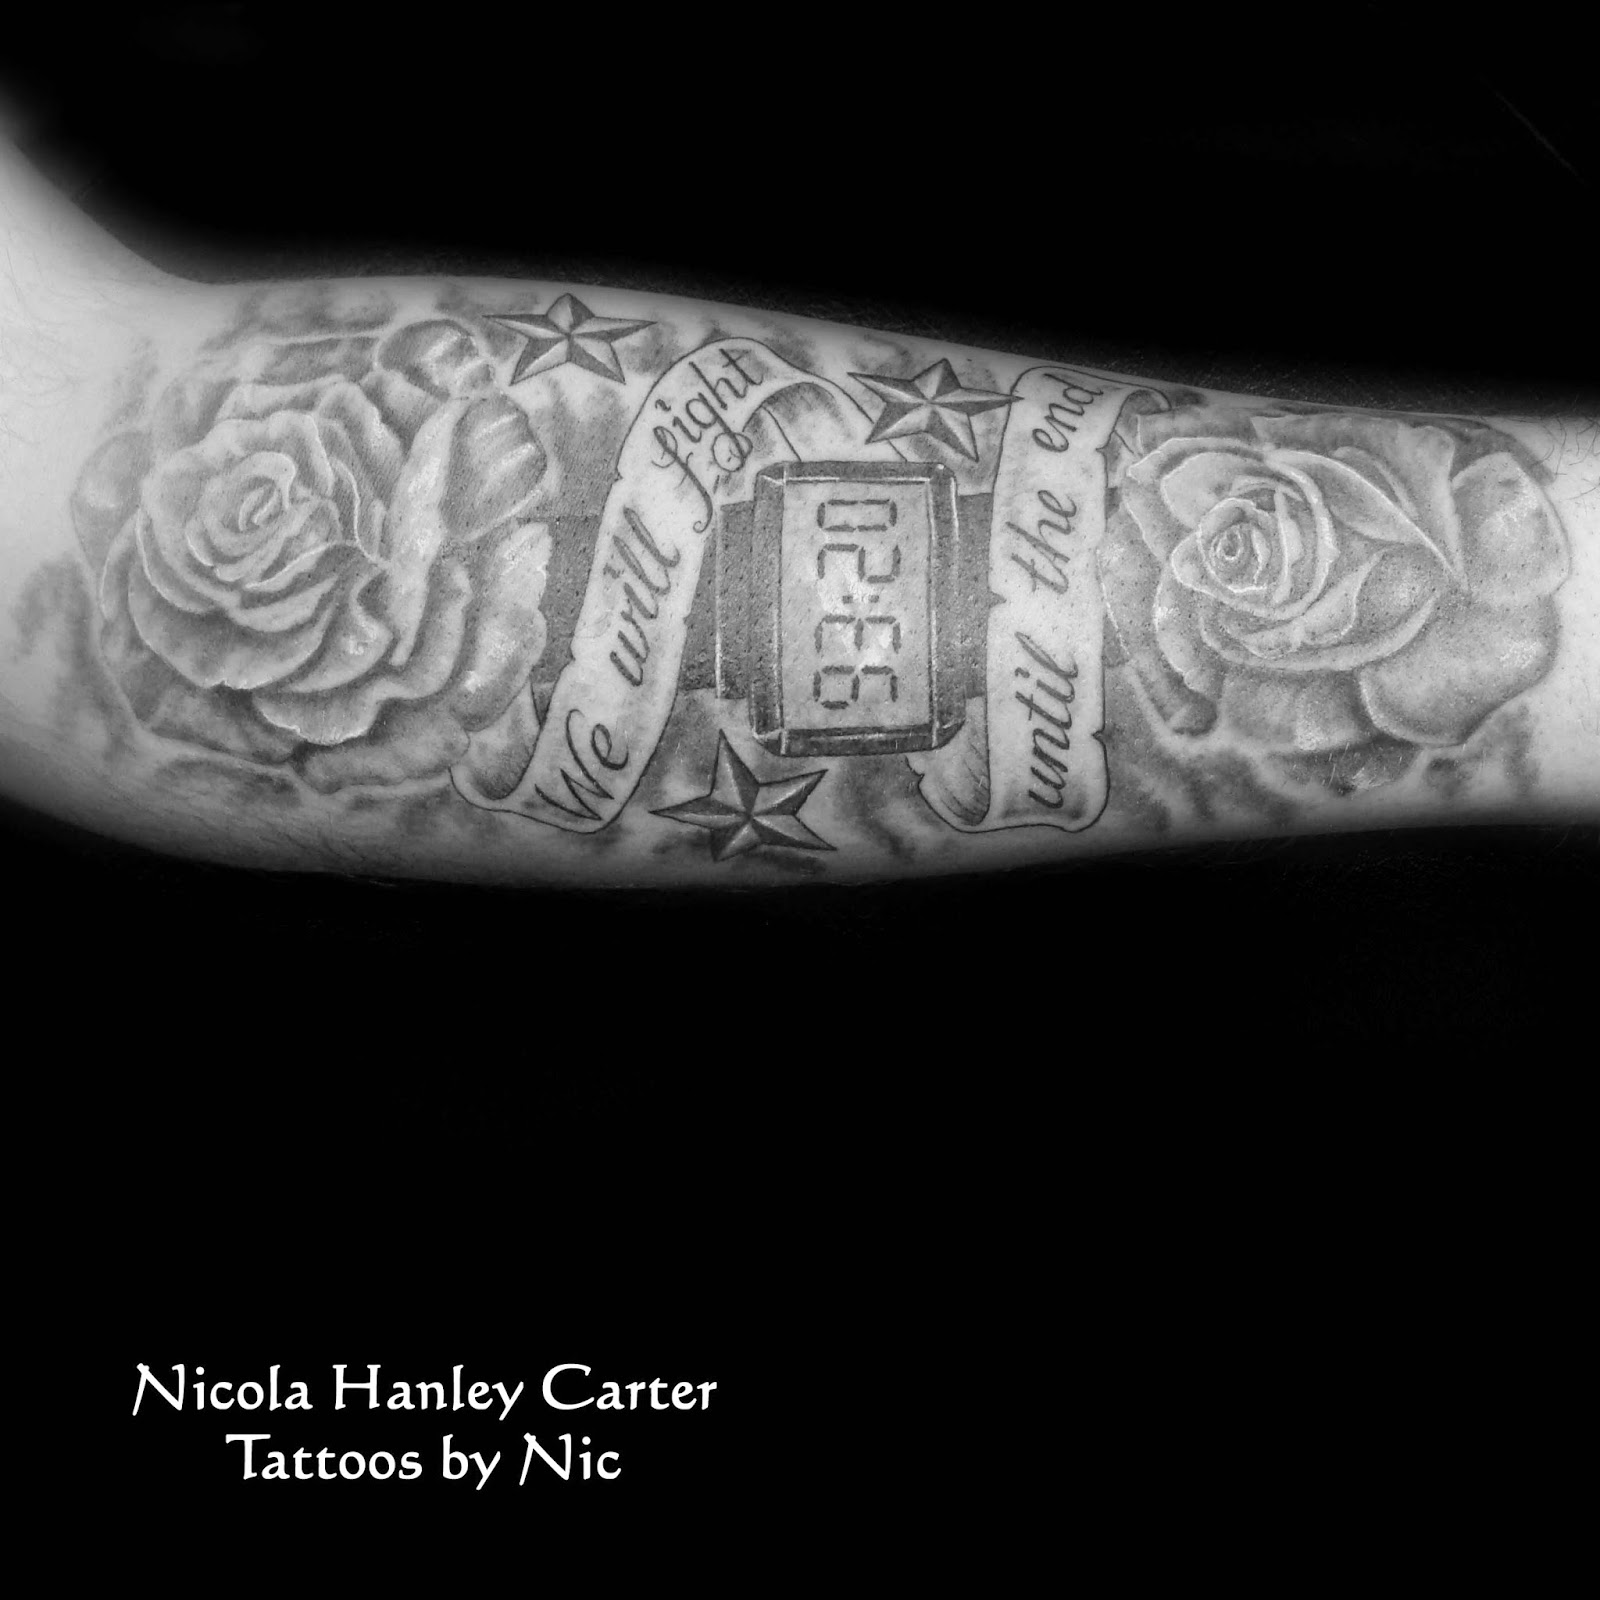 tattoos by nic nicola hanley carter manchester city tattoo. Black Bedroom Furniture Sets. Home Design Ideas